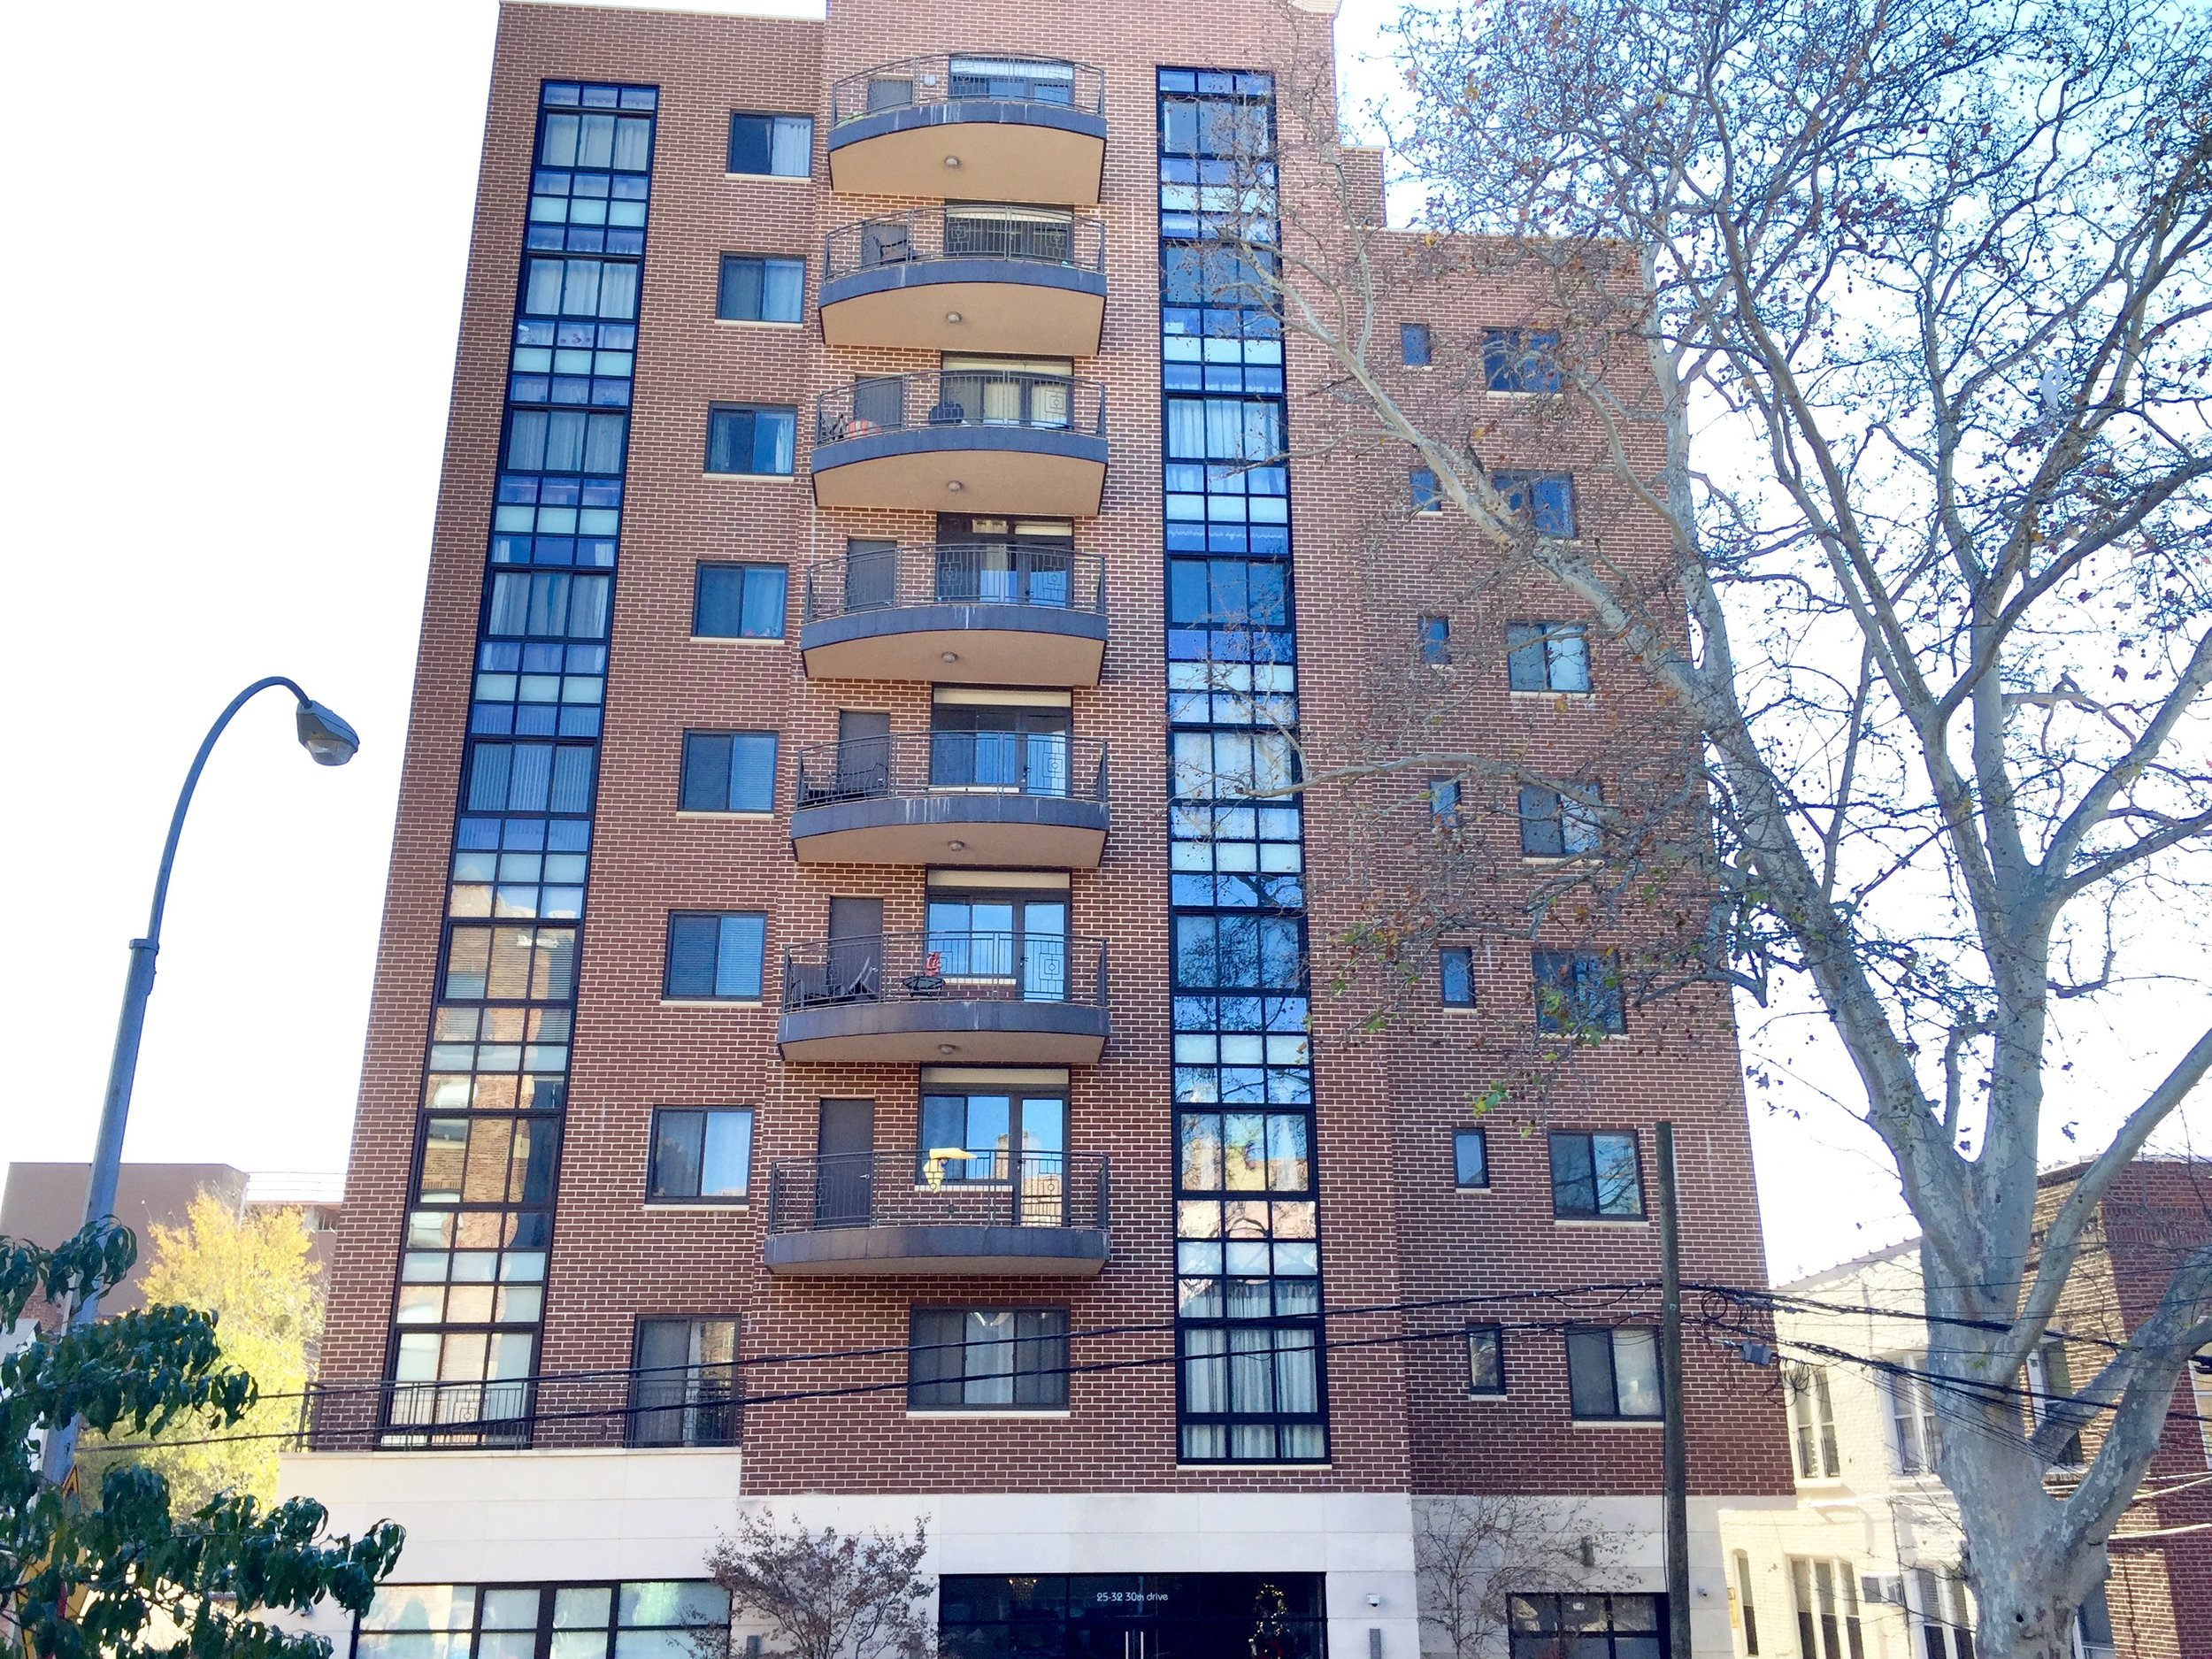 25-32 30th Drive - Astoria, NYThis building has nine stories and forty units. It comes equipped with a gym, laundry room, roof deck, and many more enticing amenities.Learn More